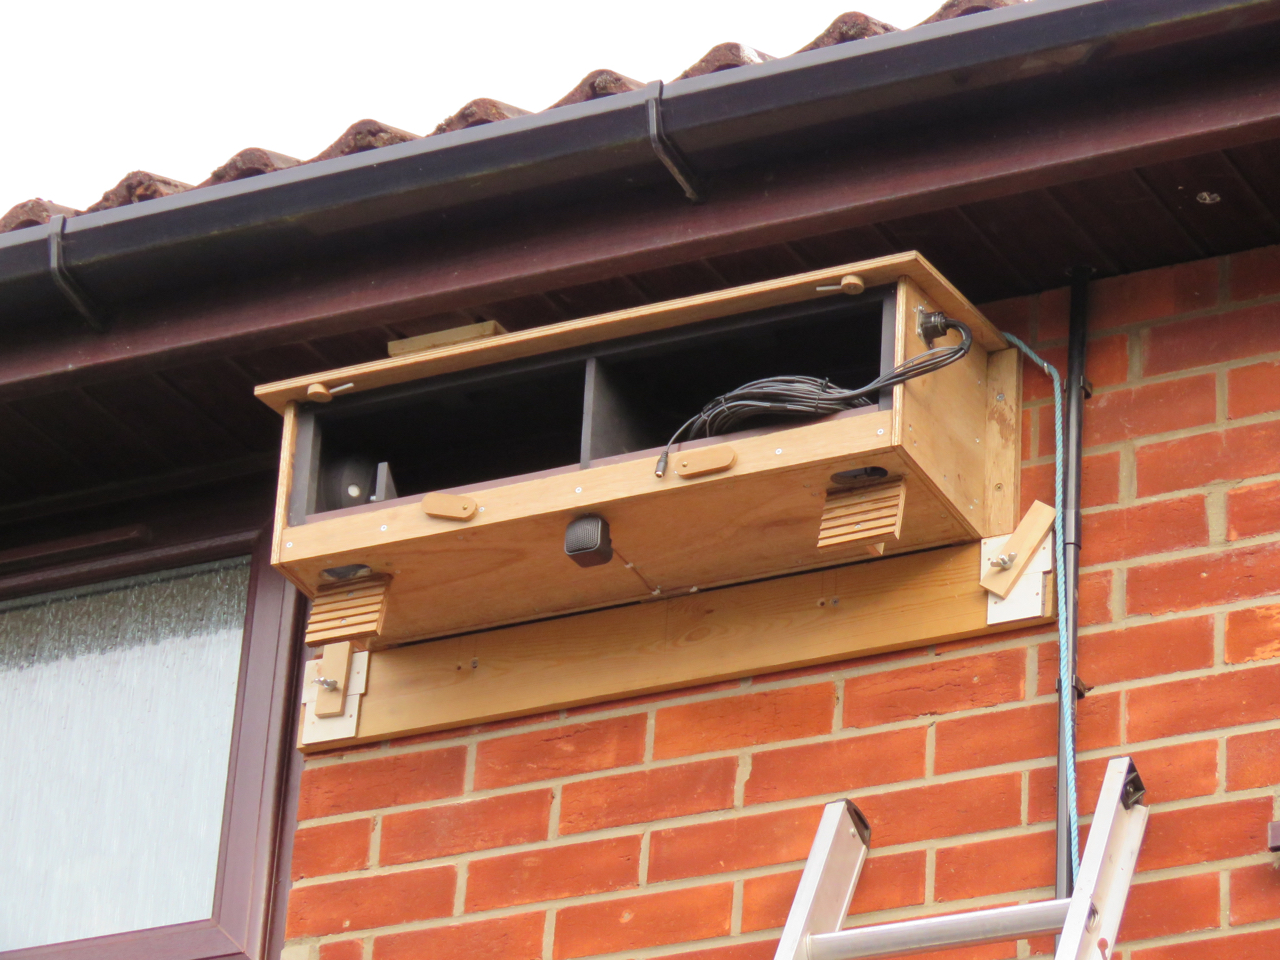 The Swift box in place.